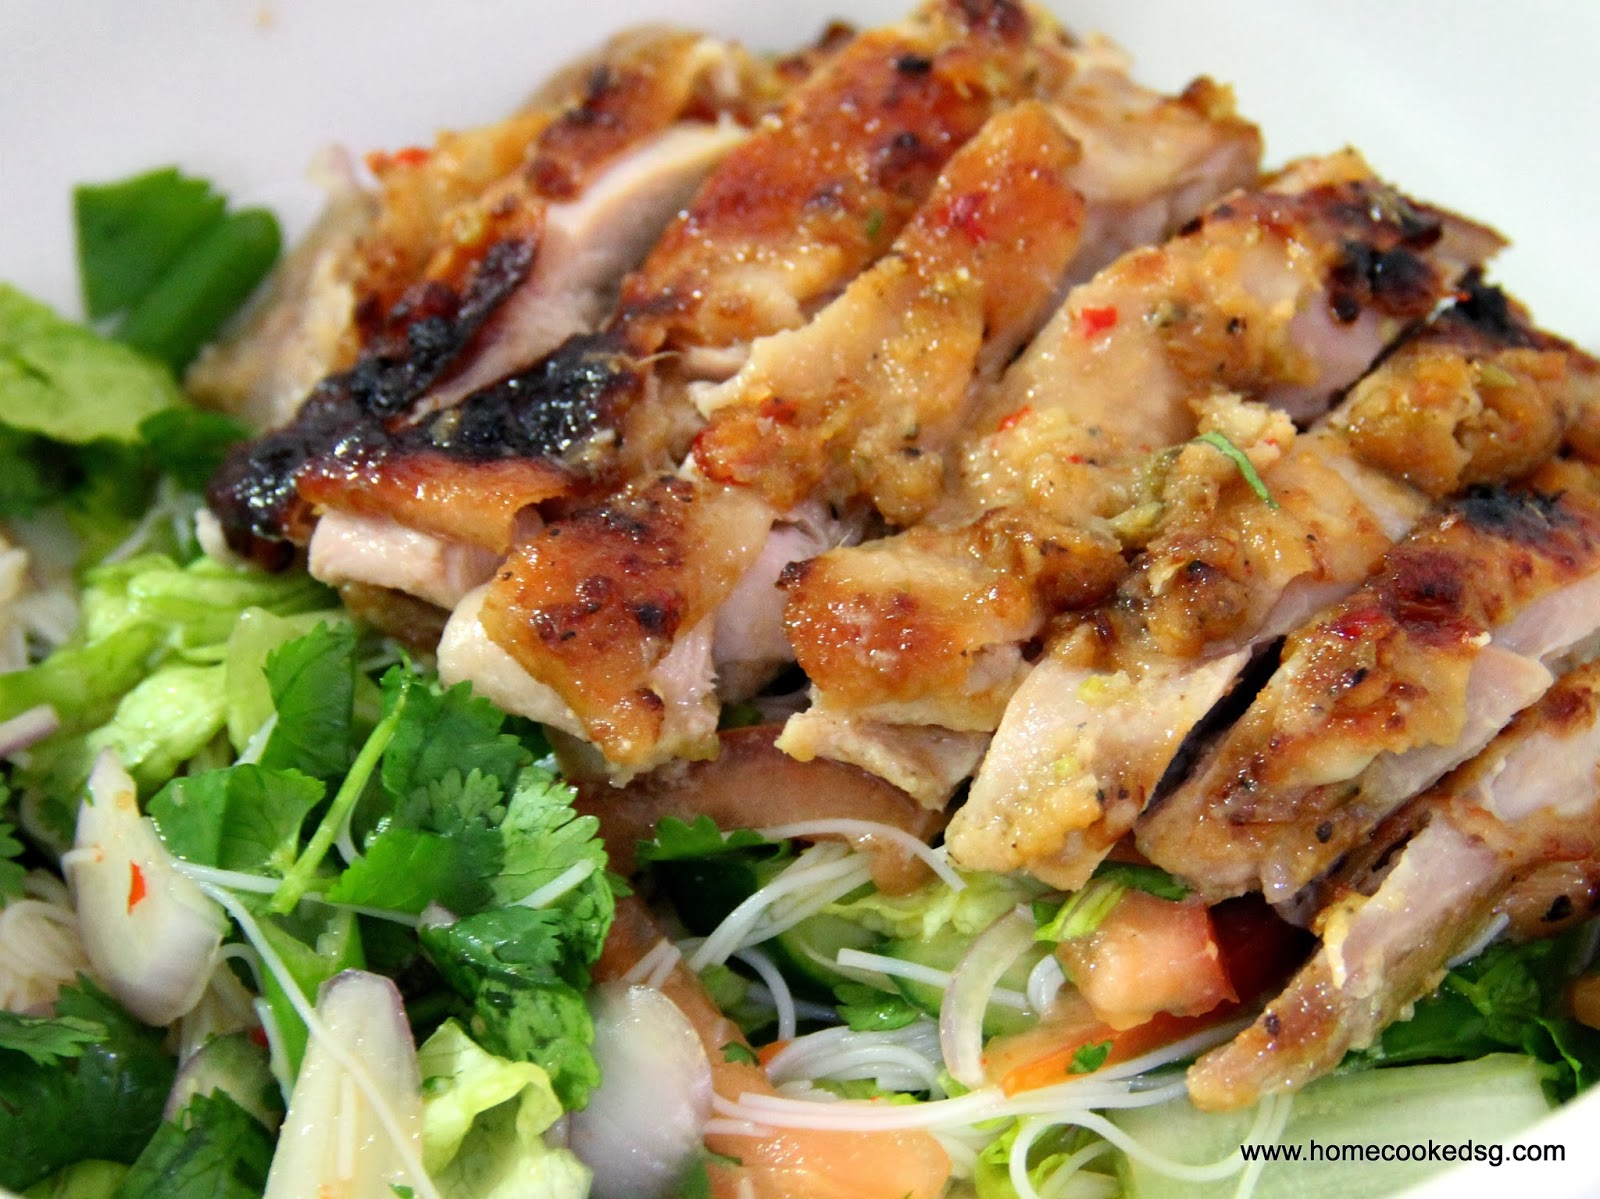 Home Cooked SG: Spicy Thai Style Chicken Salad